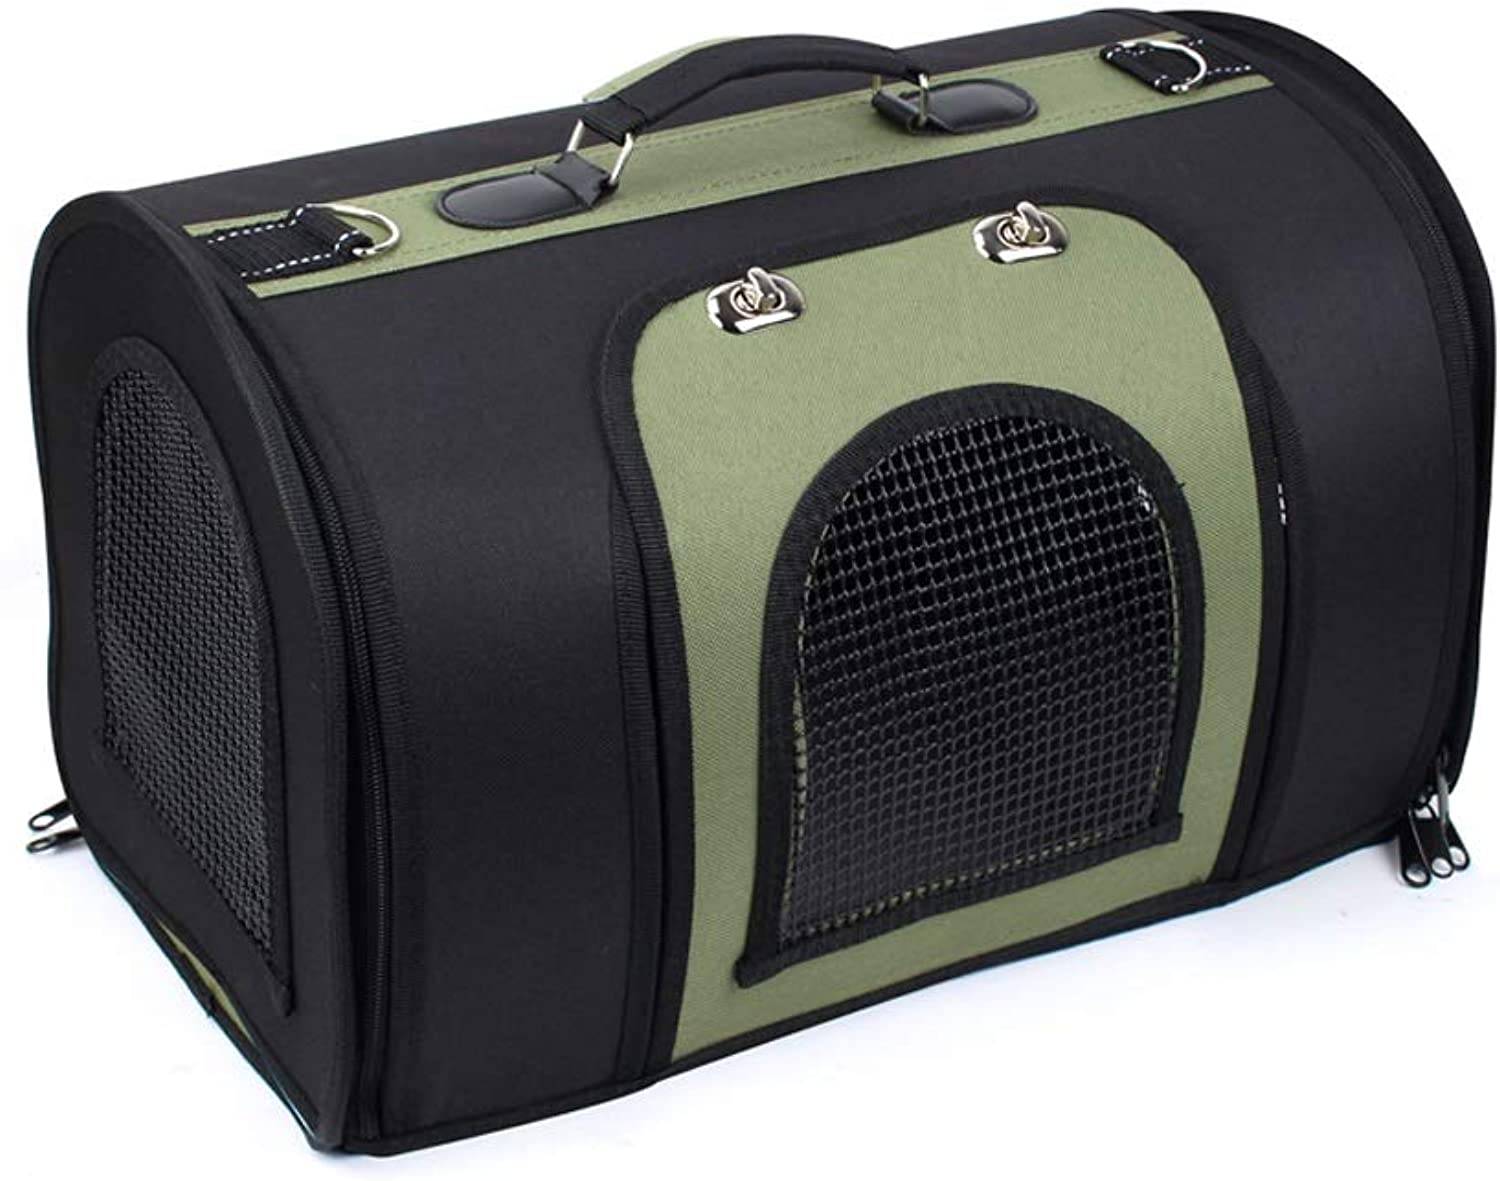 Go Pet Club Soft Crate Bag,Designed for Travel,Outdoor Use,Cat Puppy Small Pets,3 colors (color   Black Green, Size   M)